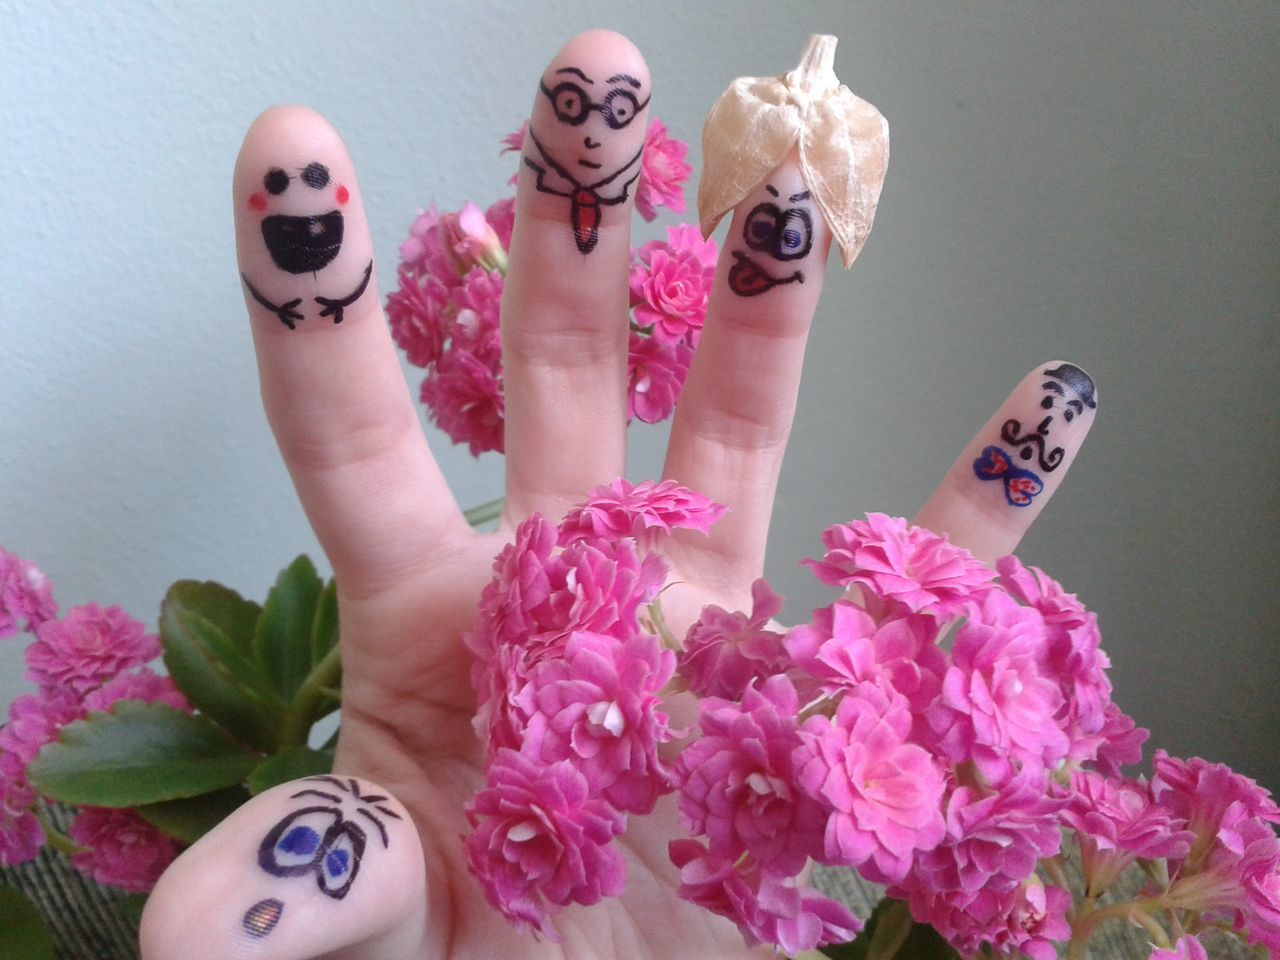 Art Colorful Crazy Crazy Ideas Detail Draw Drawing Finger Painting Fingers Flower Funny Funny Faces Human Body Part Human Hand Pink Color Smiley SMILY FACE